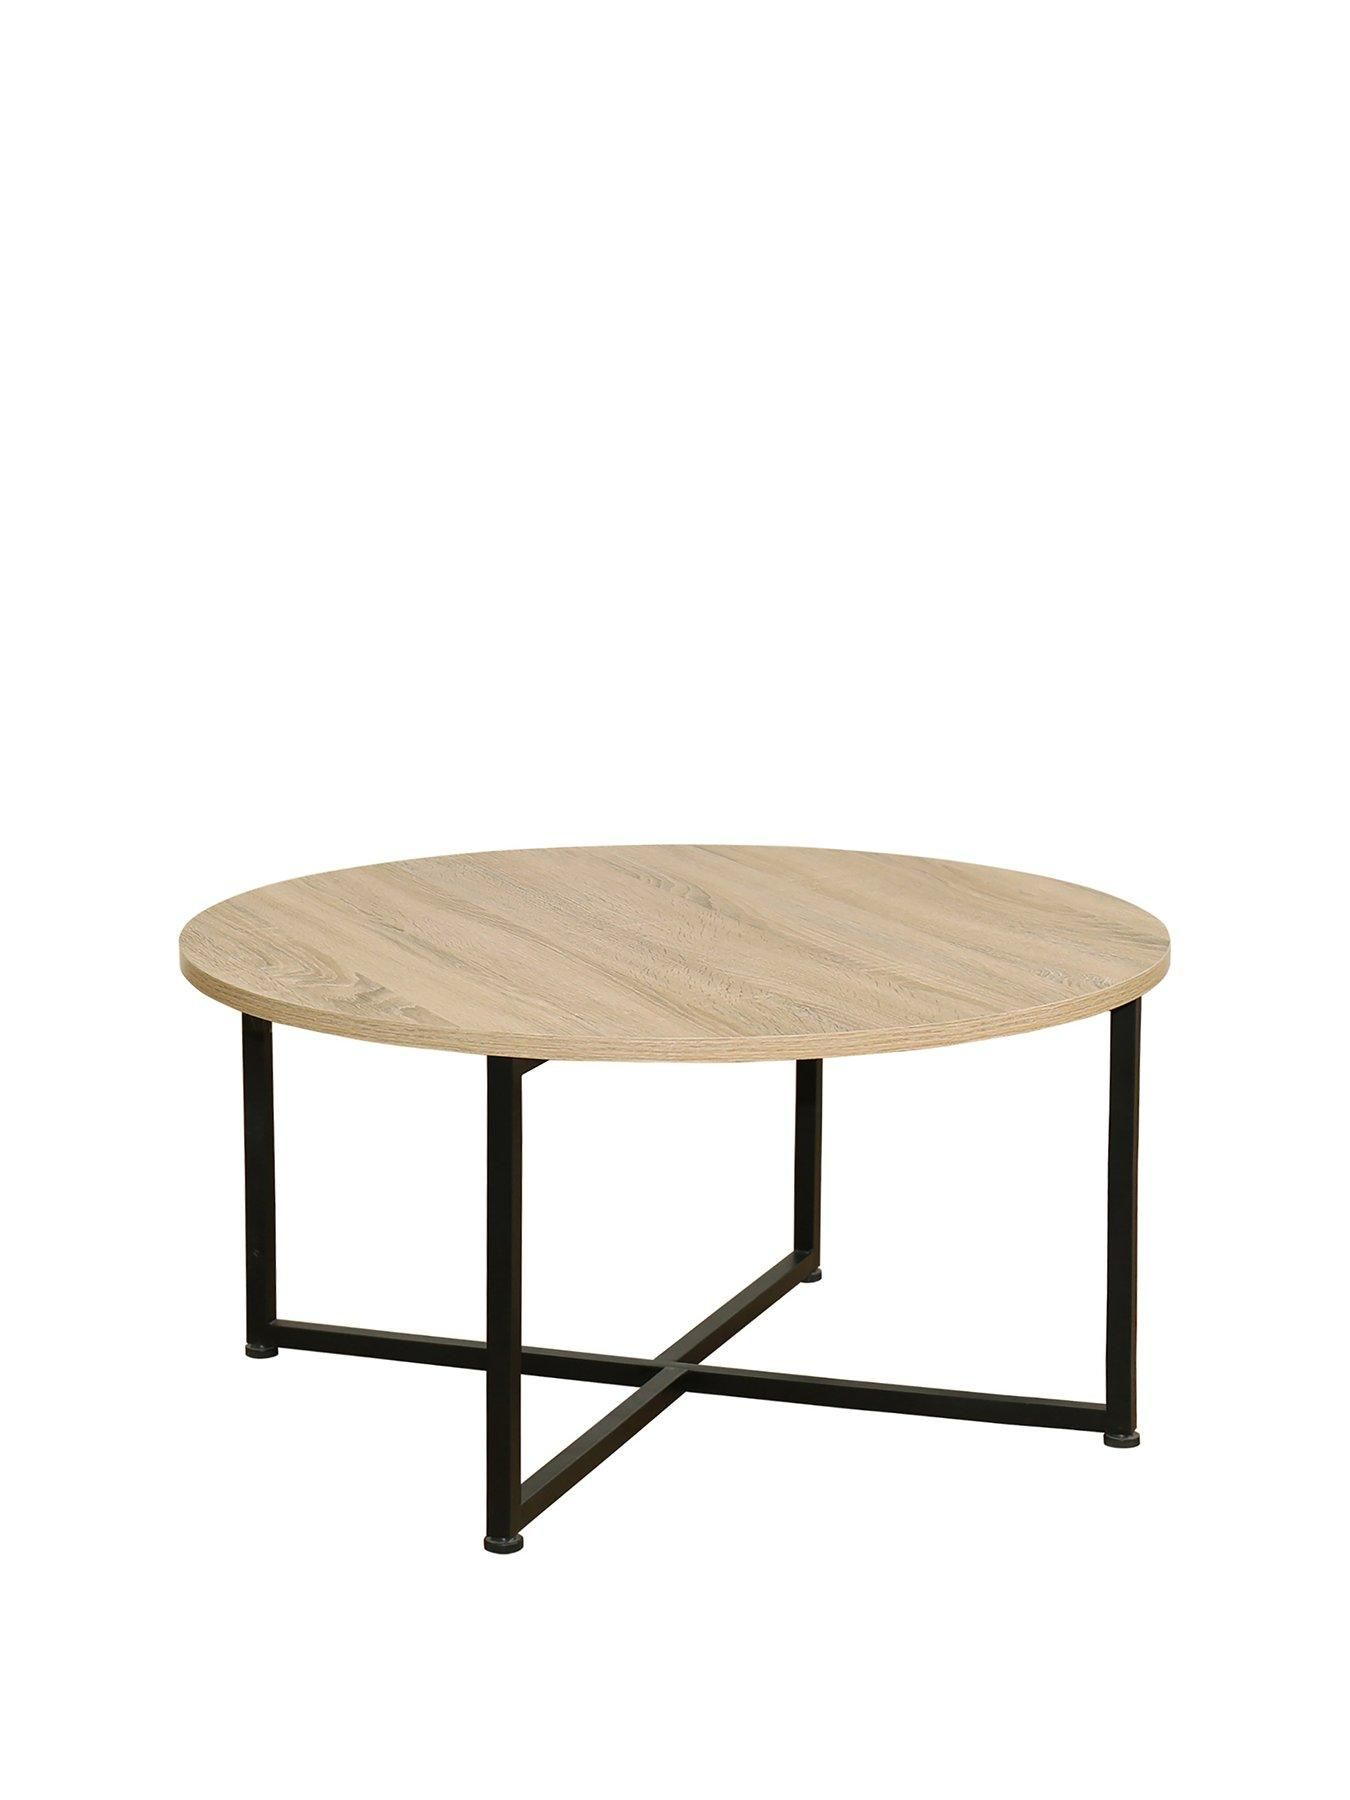 Telford Industrial Round Coffee Table Rustic Oak Round